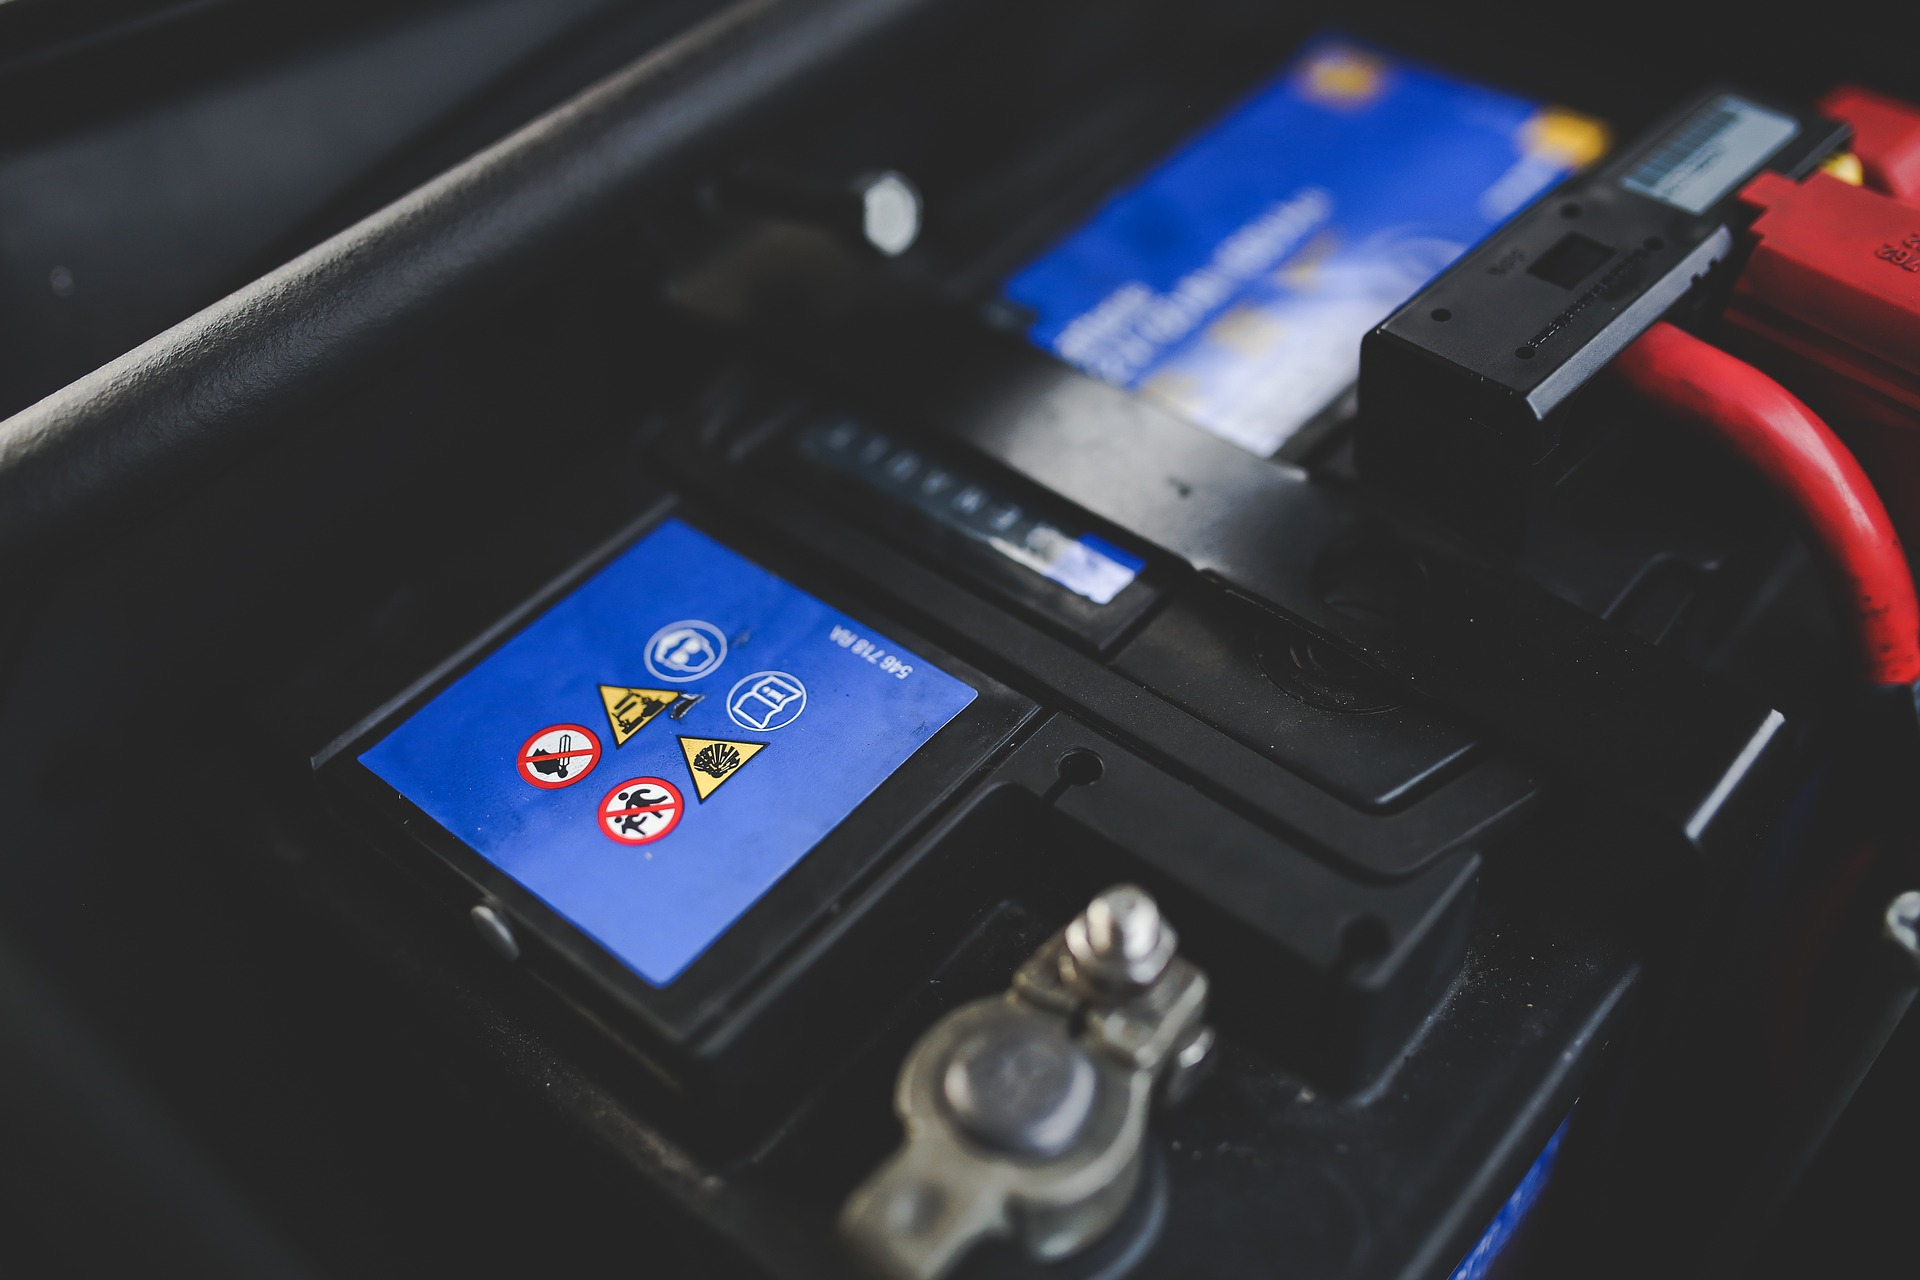 battery, car battery, cars, engine, car, automotive, car parts, Not 2 Grand, N2G, N2Grand, not2grand.co.uk